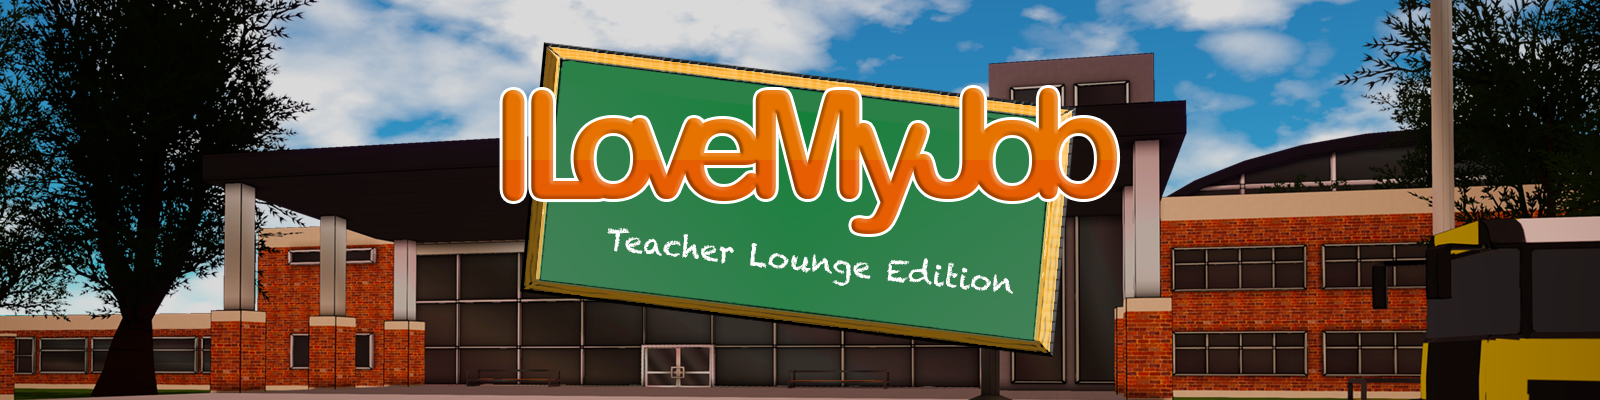 I Love My Job - Teacher Lounge Edition poster